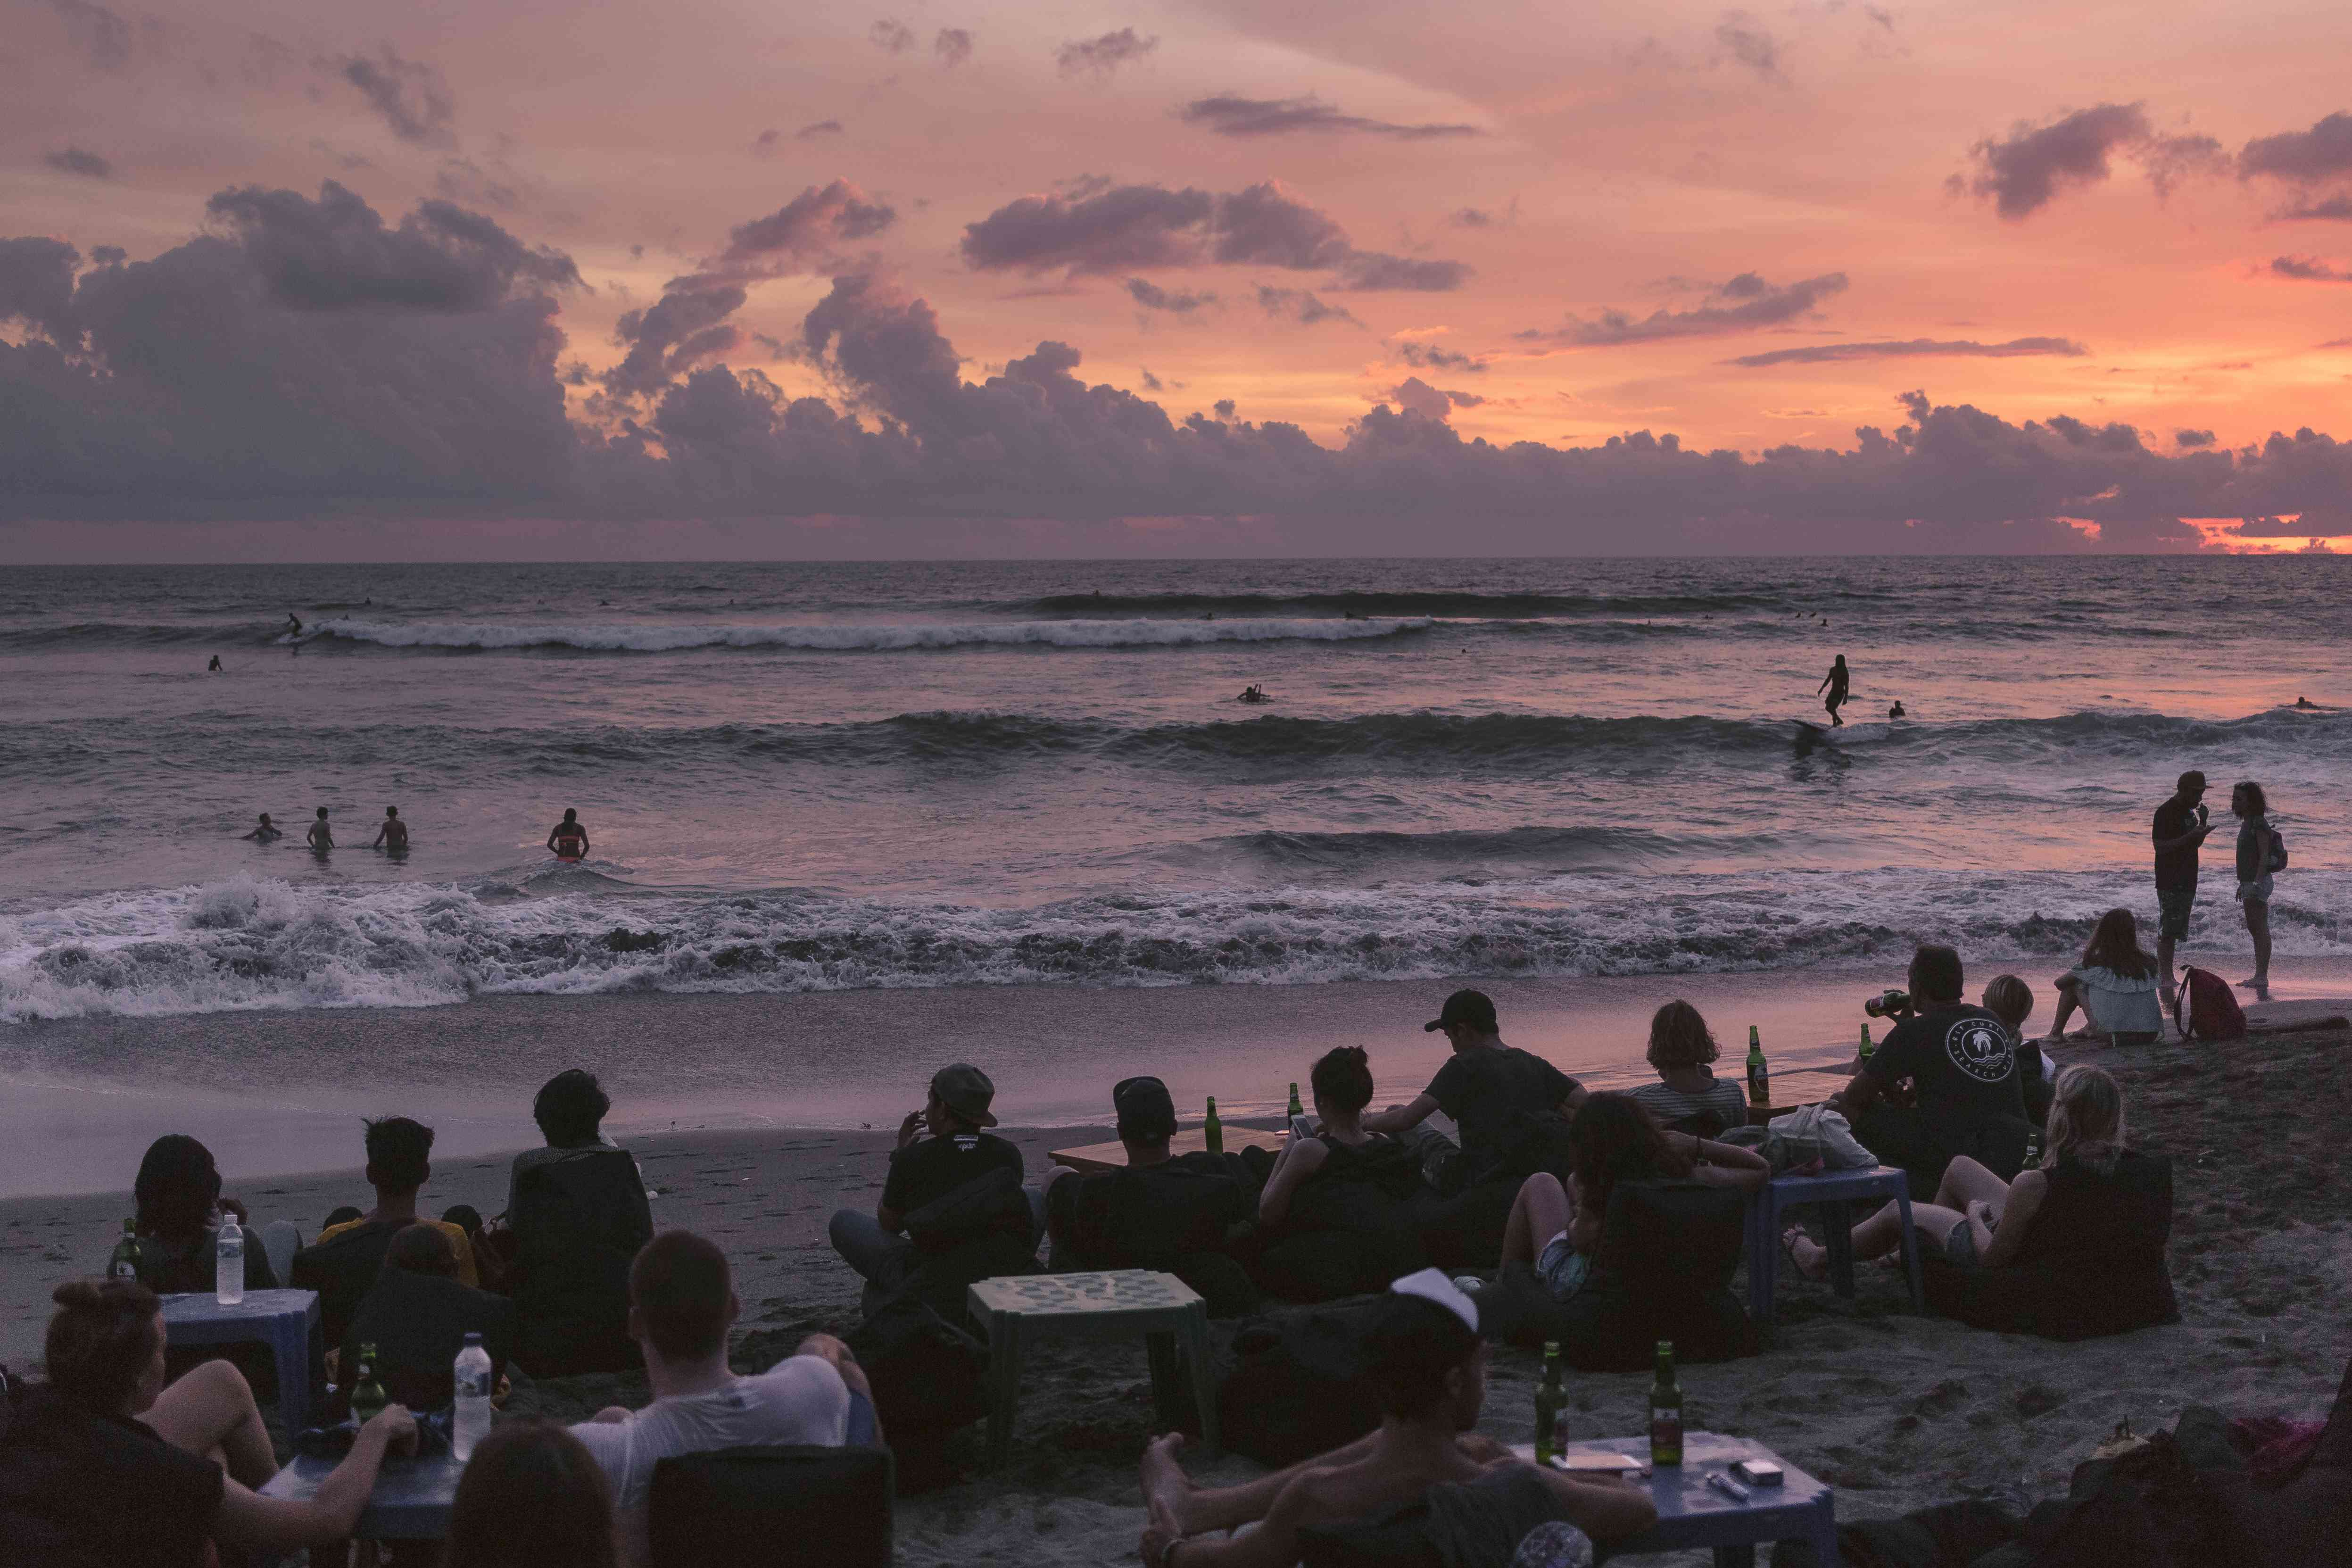 People enjoy drinks and watch sunset on the beach at Canggu, Bali